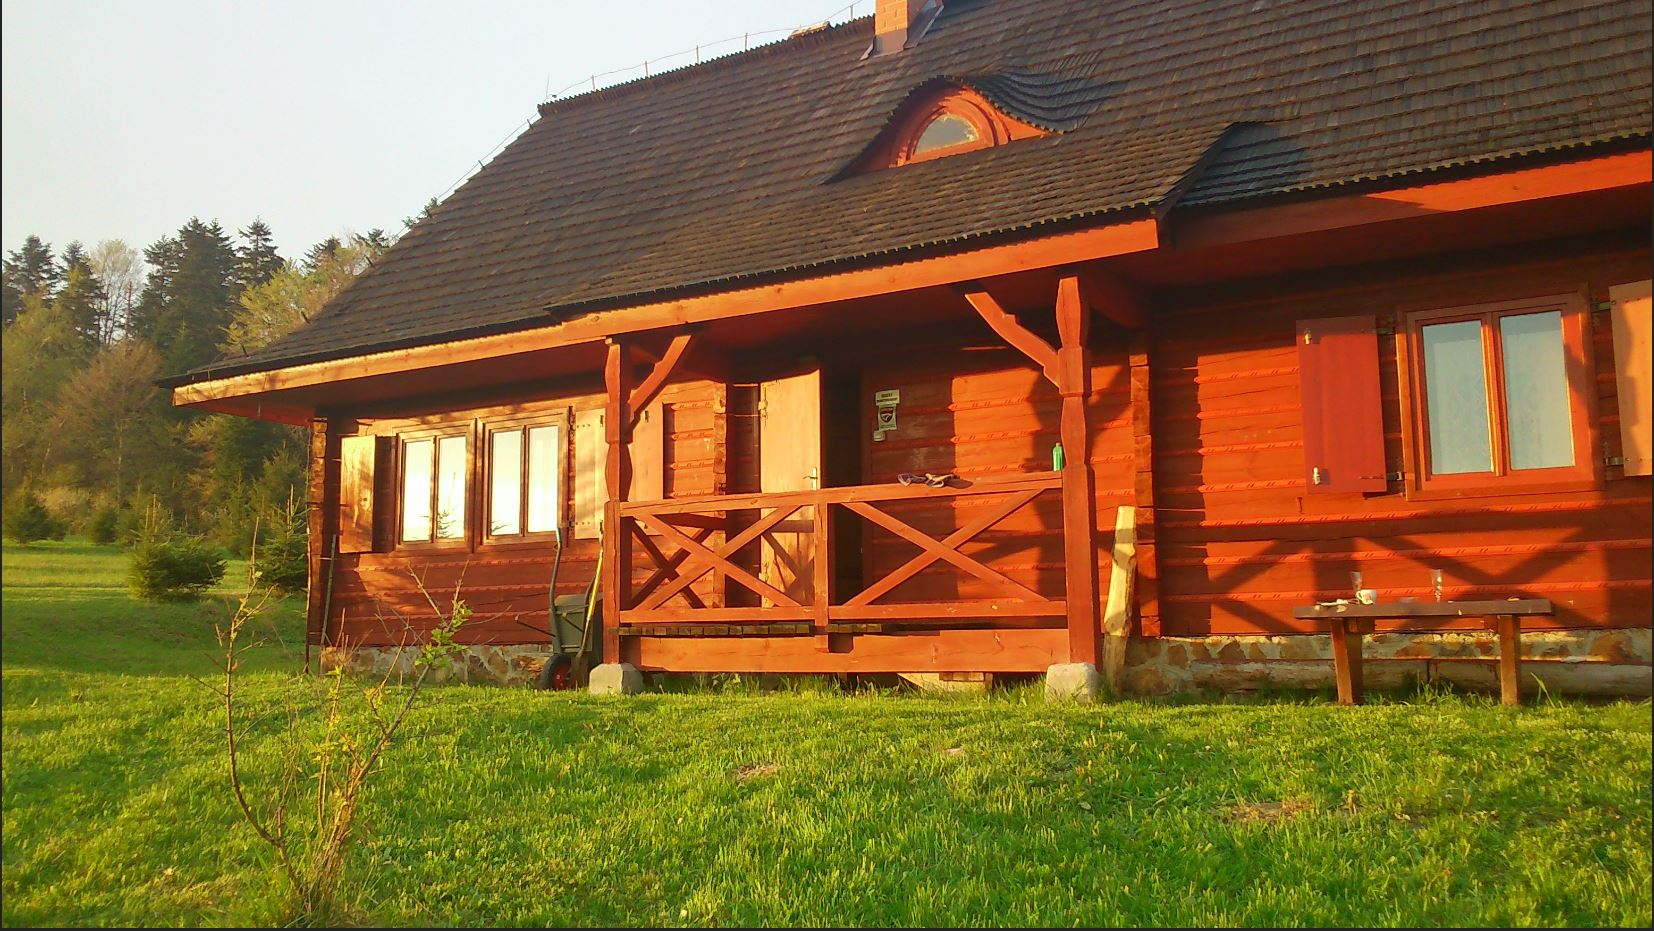 House for Sale in Brzegi Dolne Poland